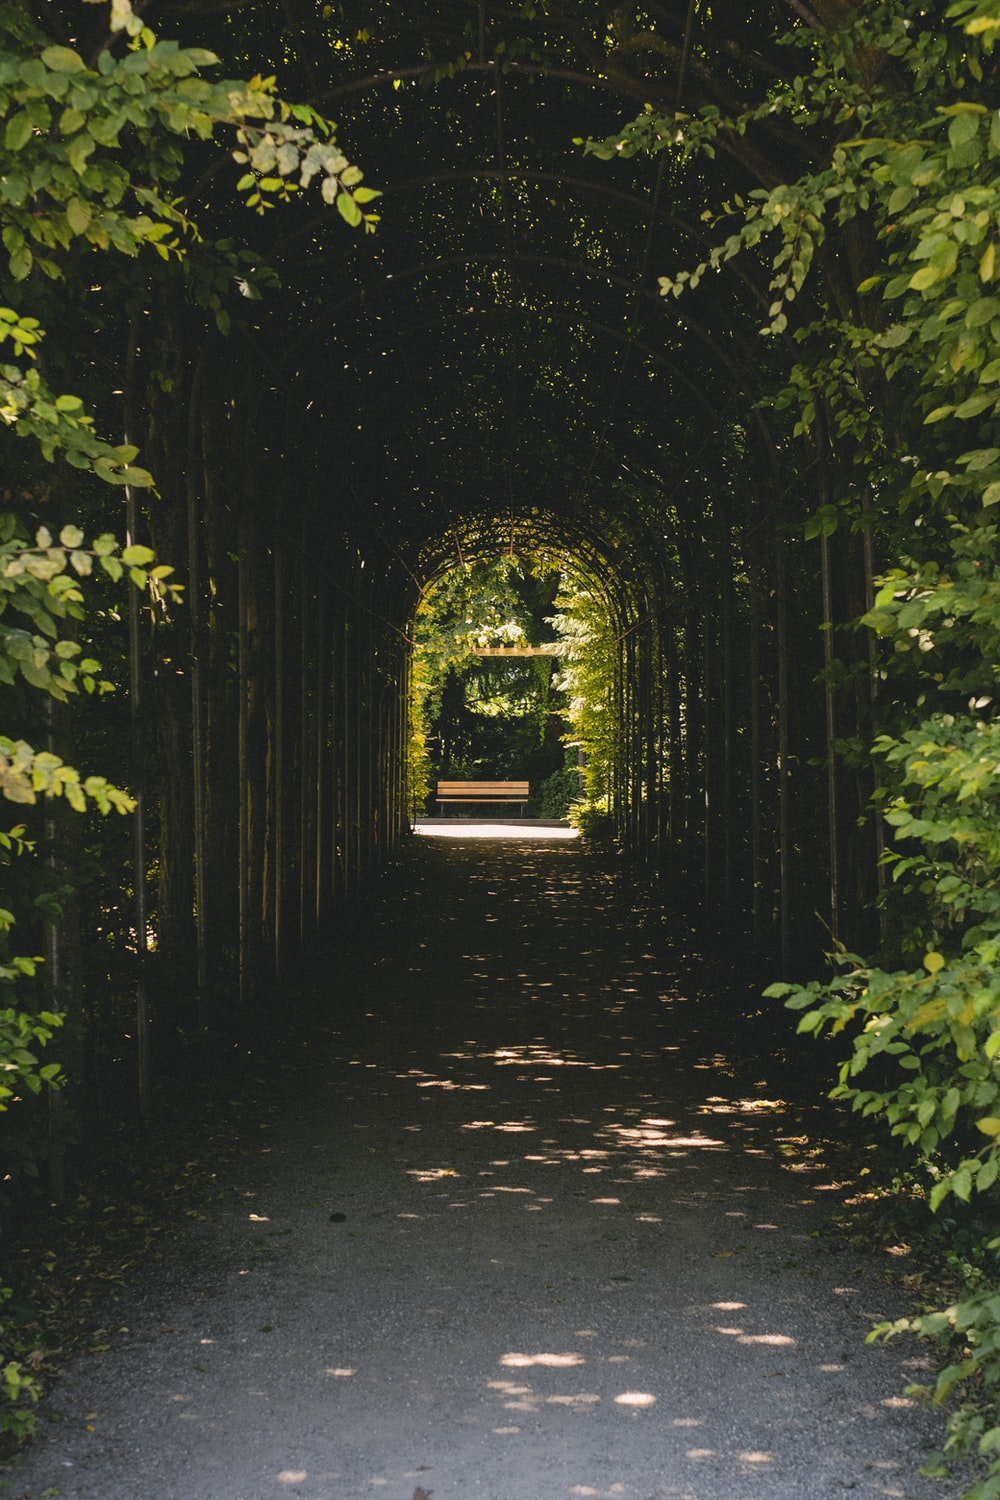 green plants on pathway during daytime